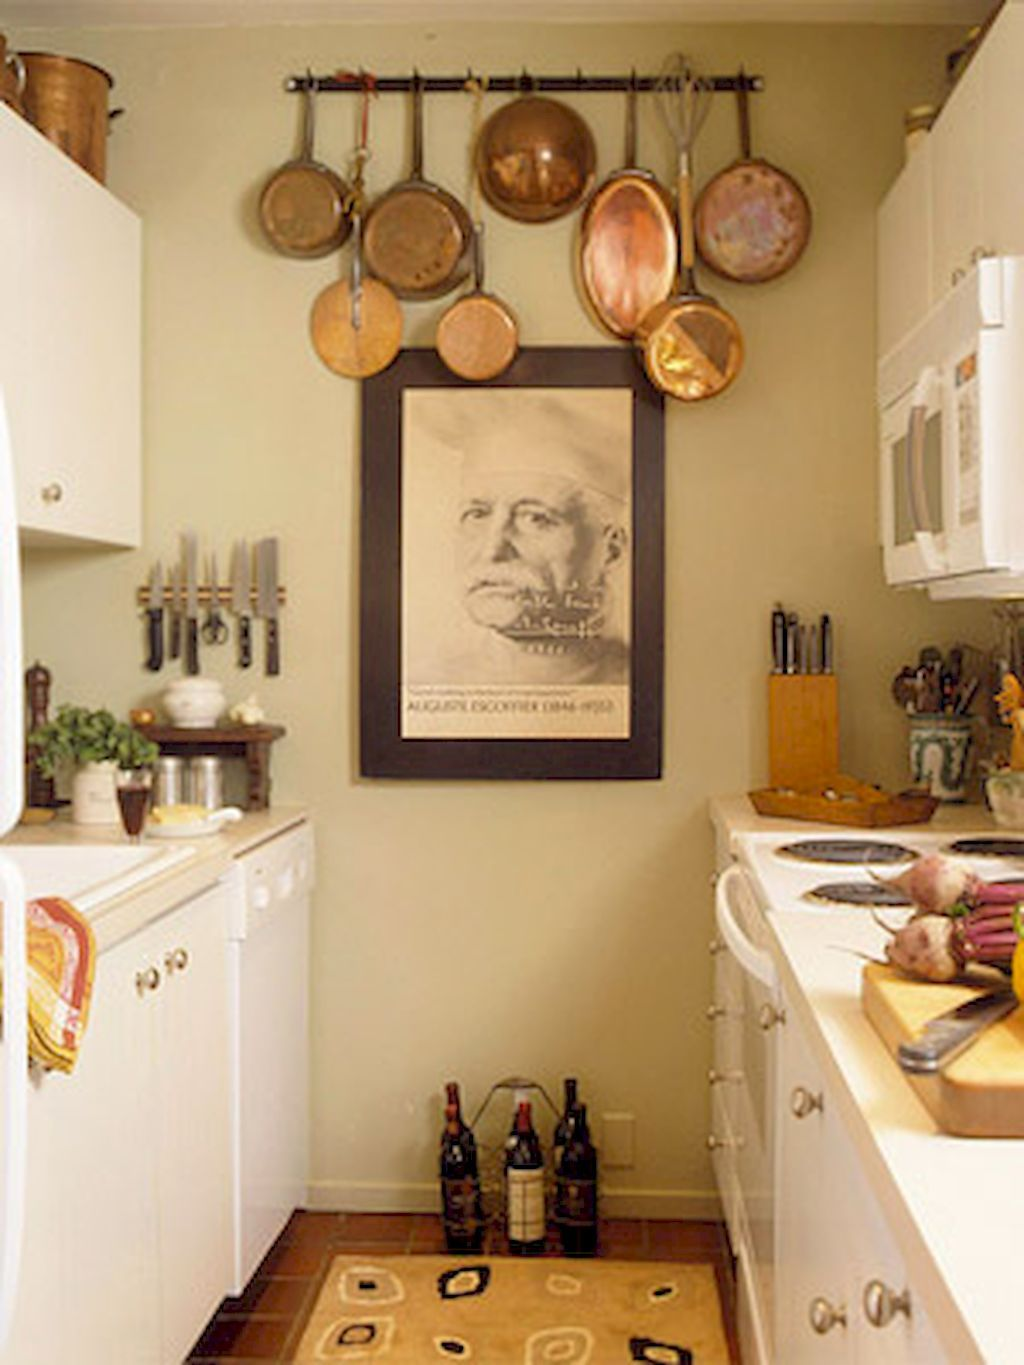 50 Simply Apartment Kitchen Decorating Ideas on A Budget | Apartment ...